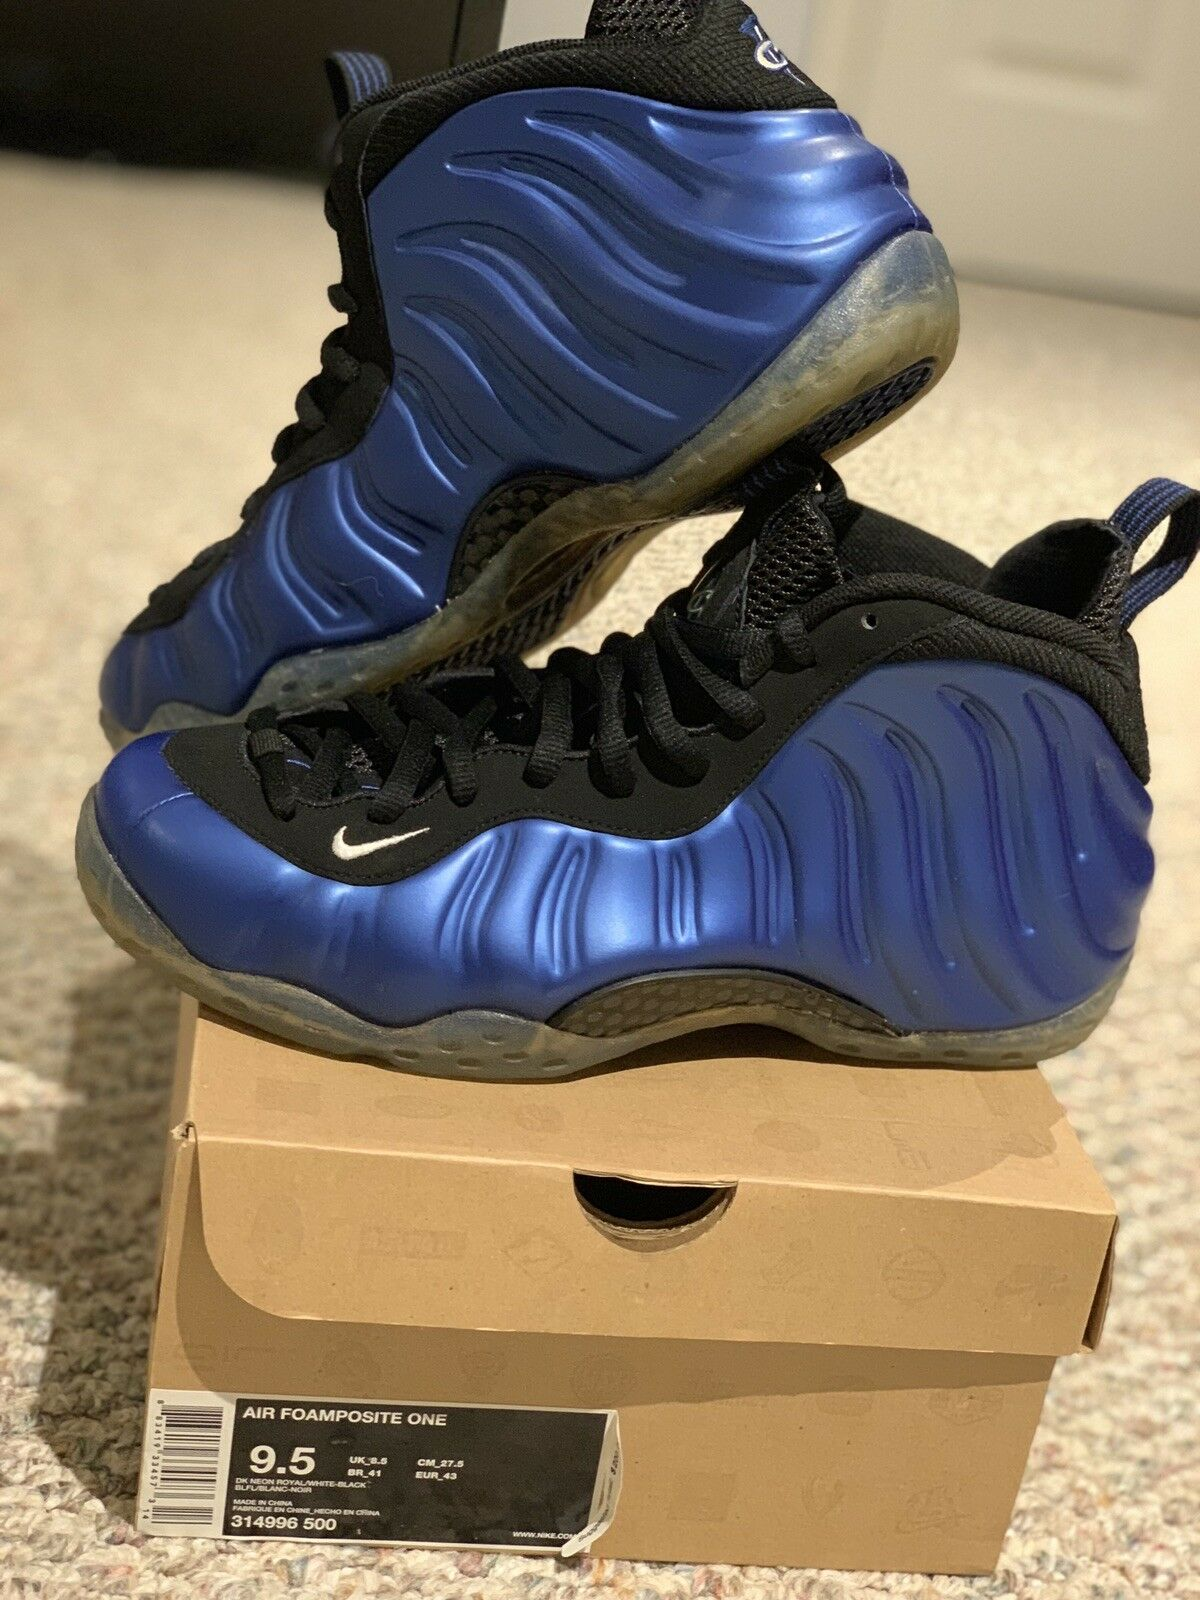 2011 Nike AIR FOAMPOSITE ONE  ROYAL blueE Sz 9.5